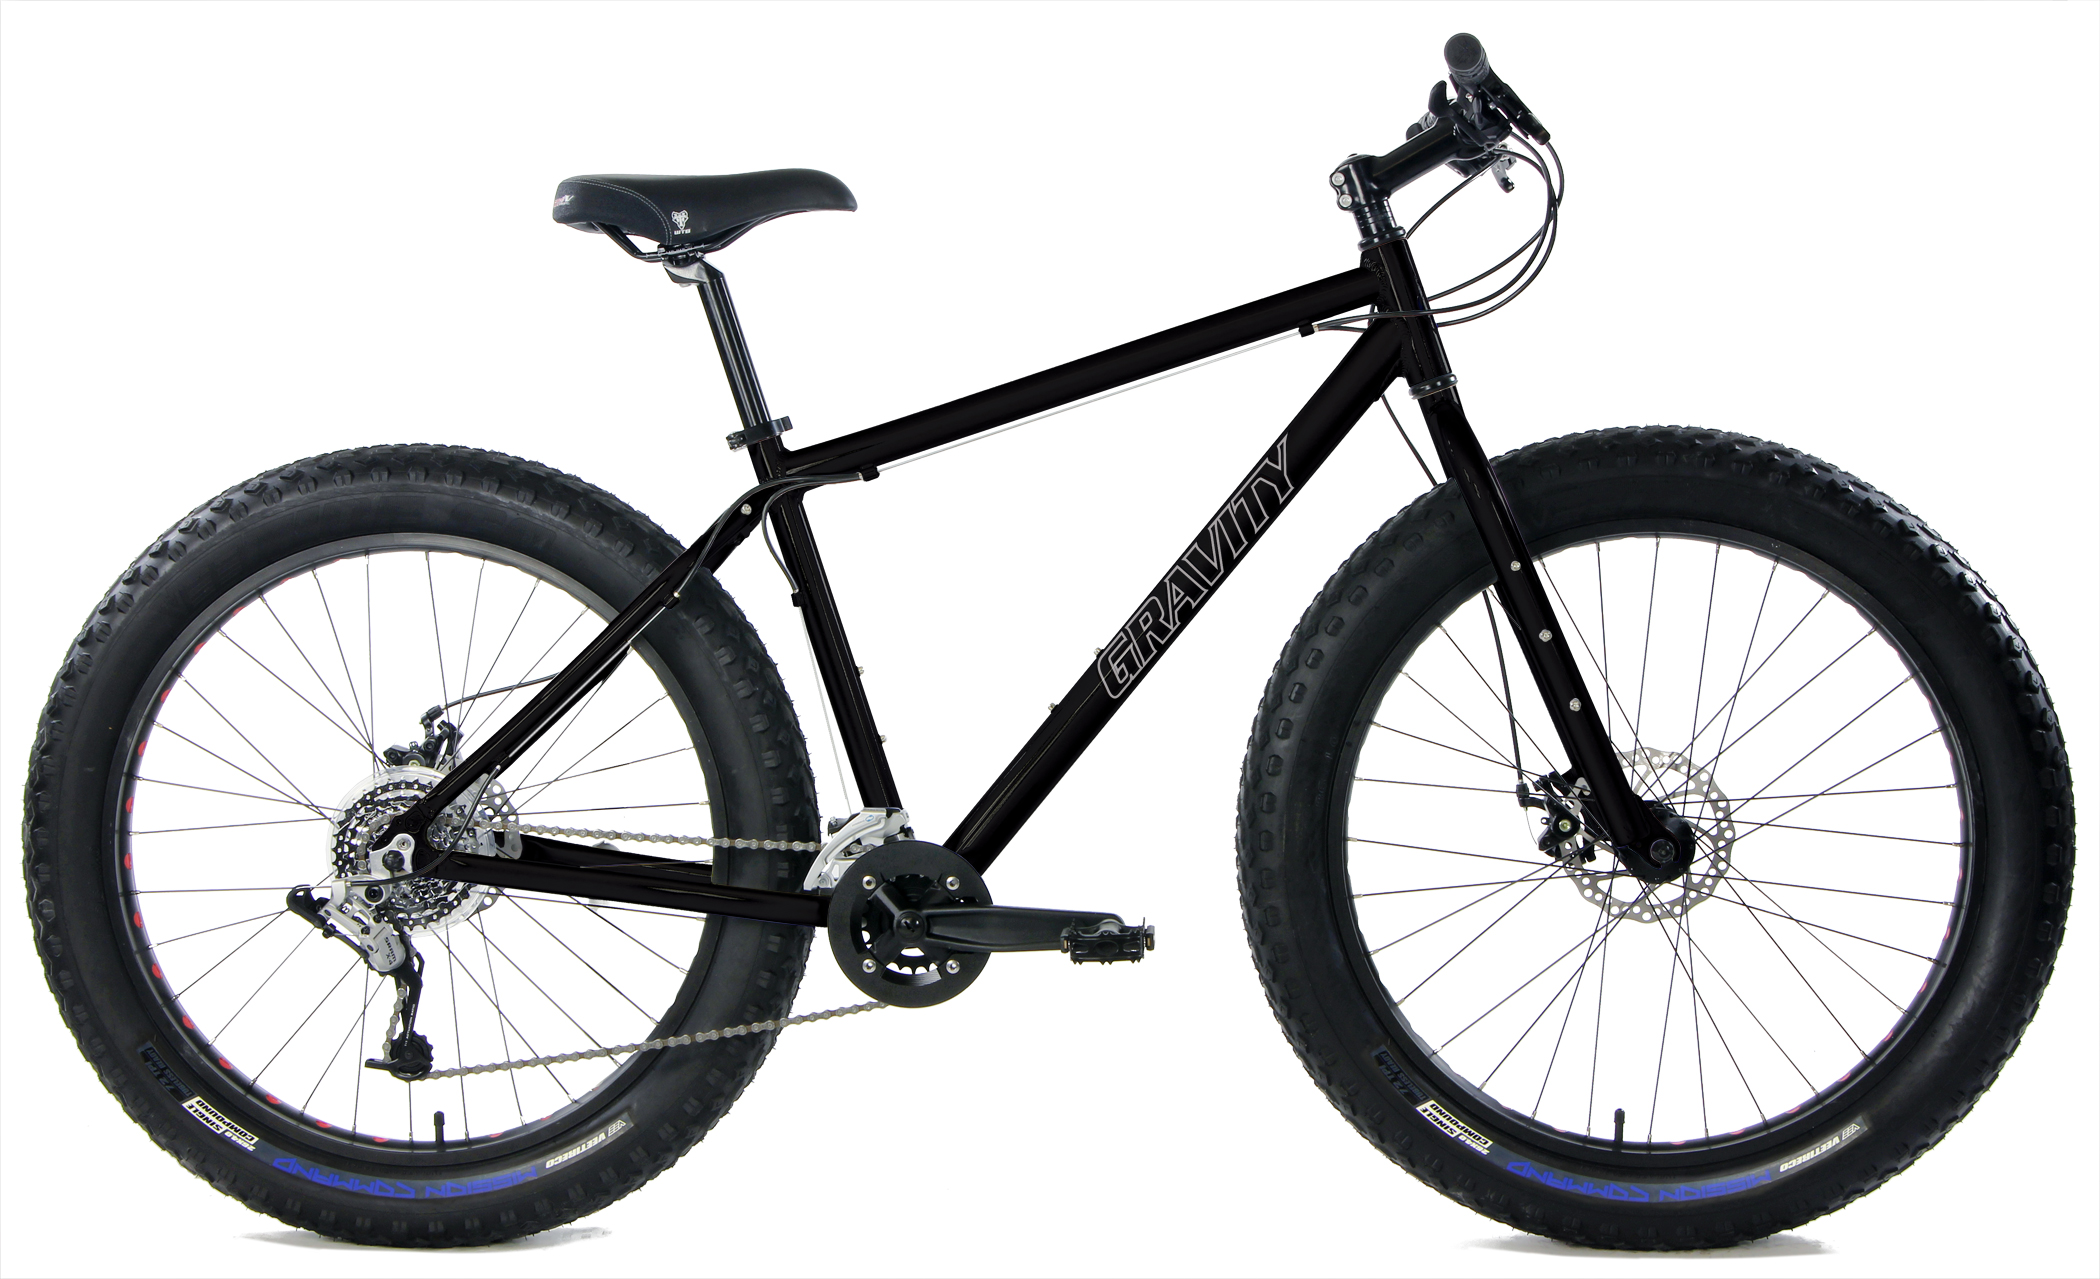 Save up to 60% off new Fat Bikes and Mountain Bikes - MTB - Gravity ...